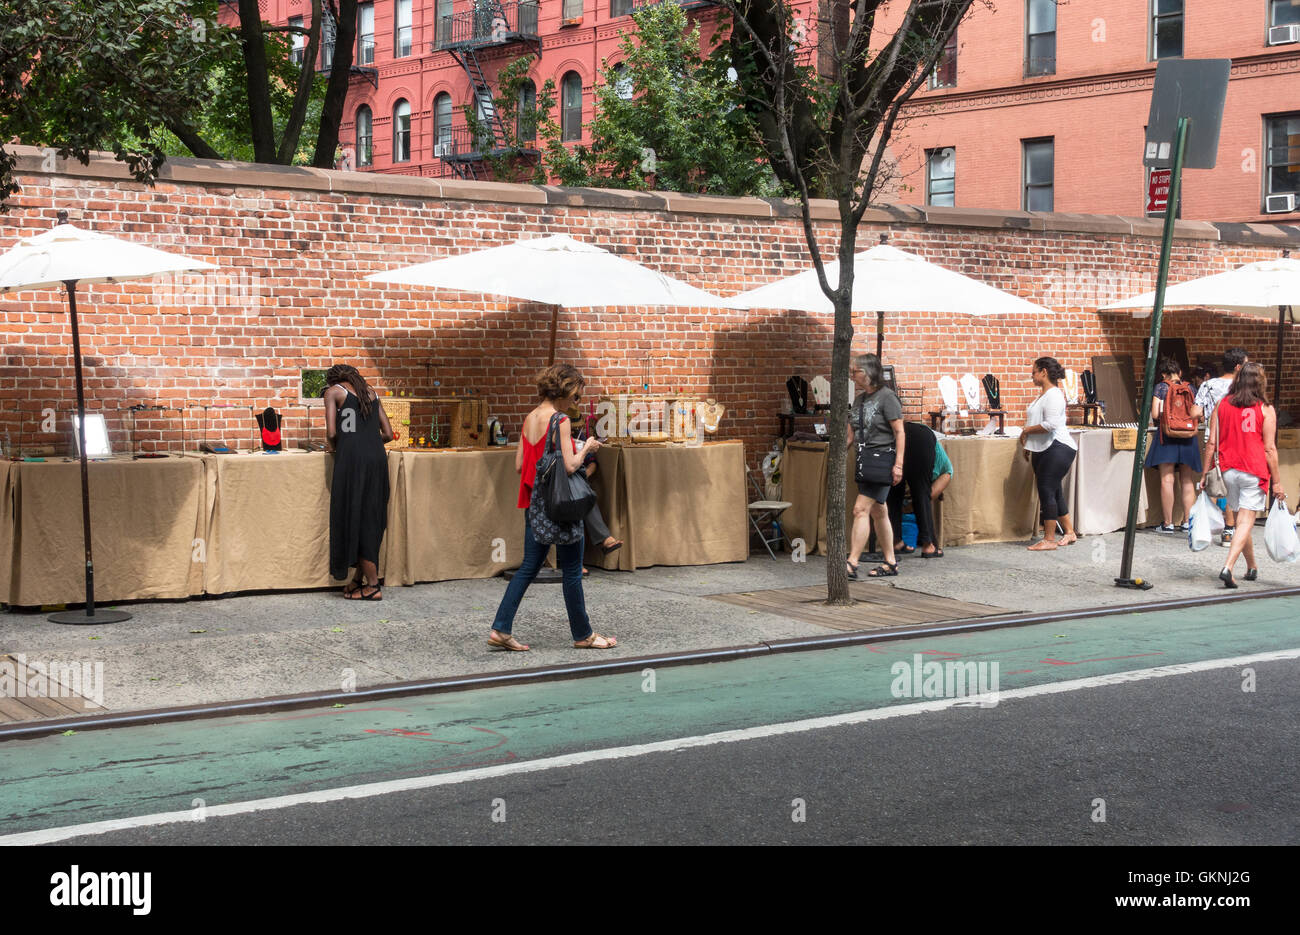 Outdoor stands selling collectibles on Prince Street in Nolita in New York City - Stock Image